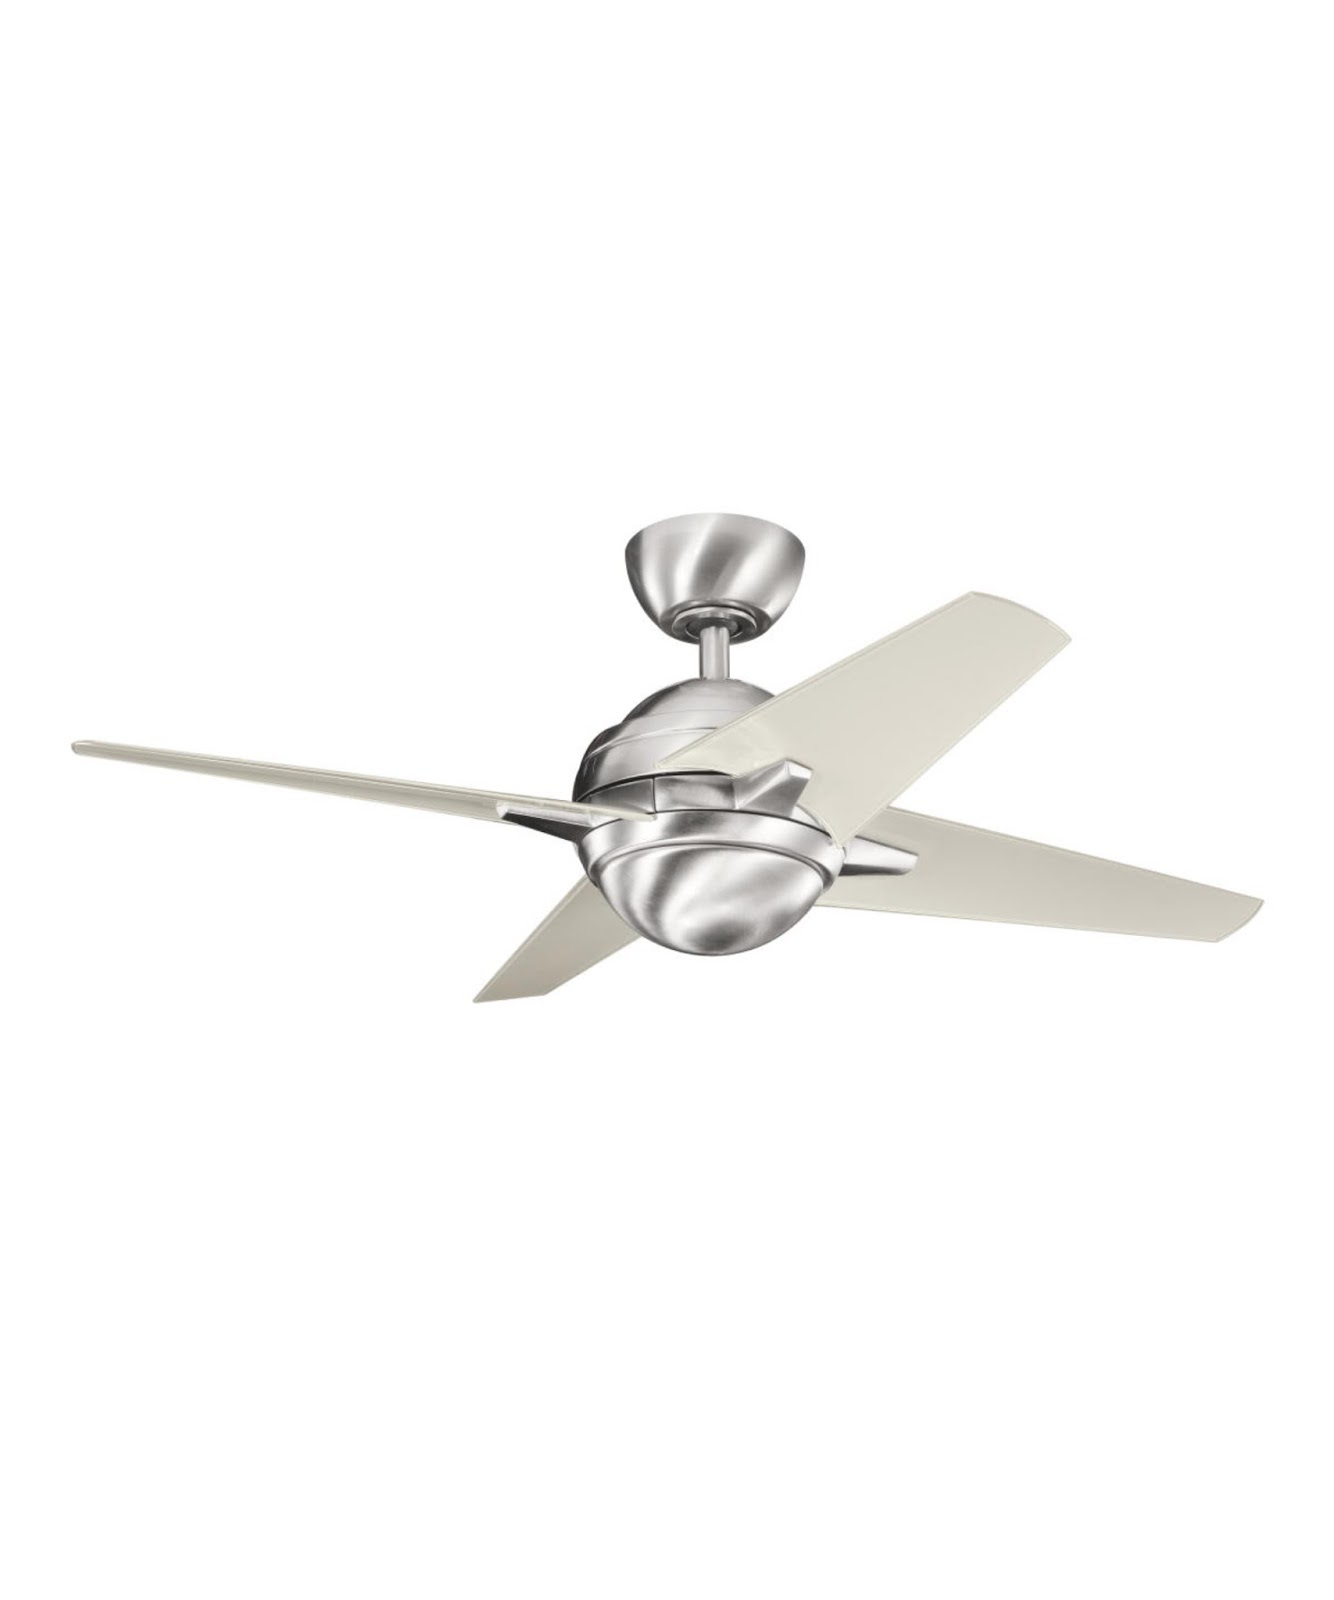 10 reasons to install stainless steel outdoor ceiling fans warisan stainless steel outdoor ceiling fans photo 8 aloadofball Image collections